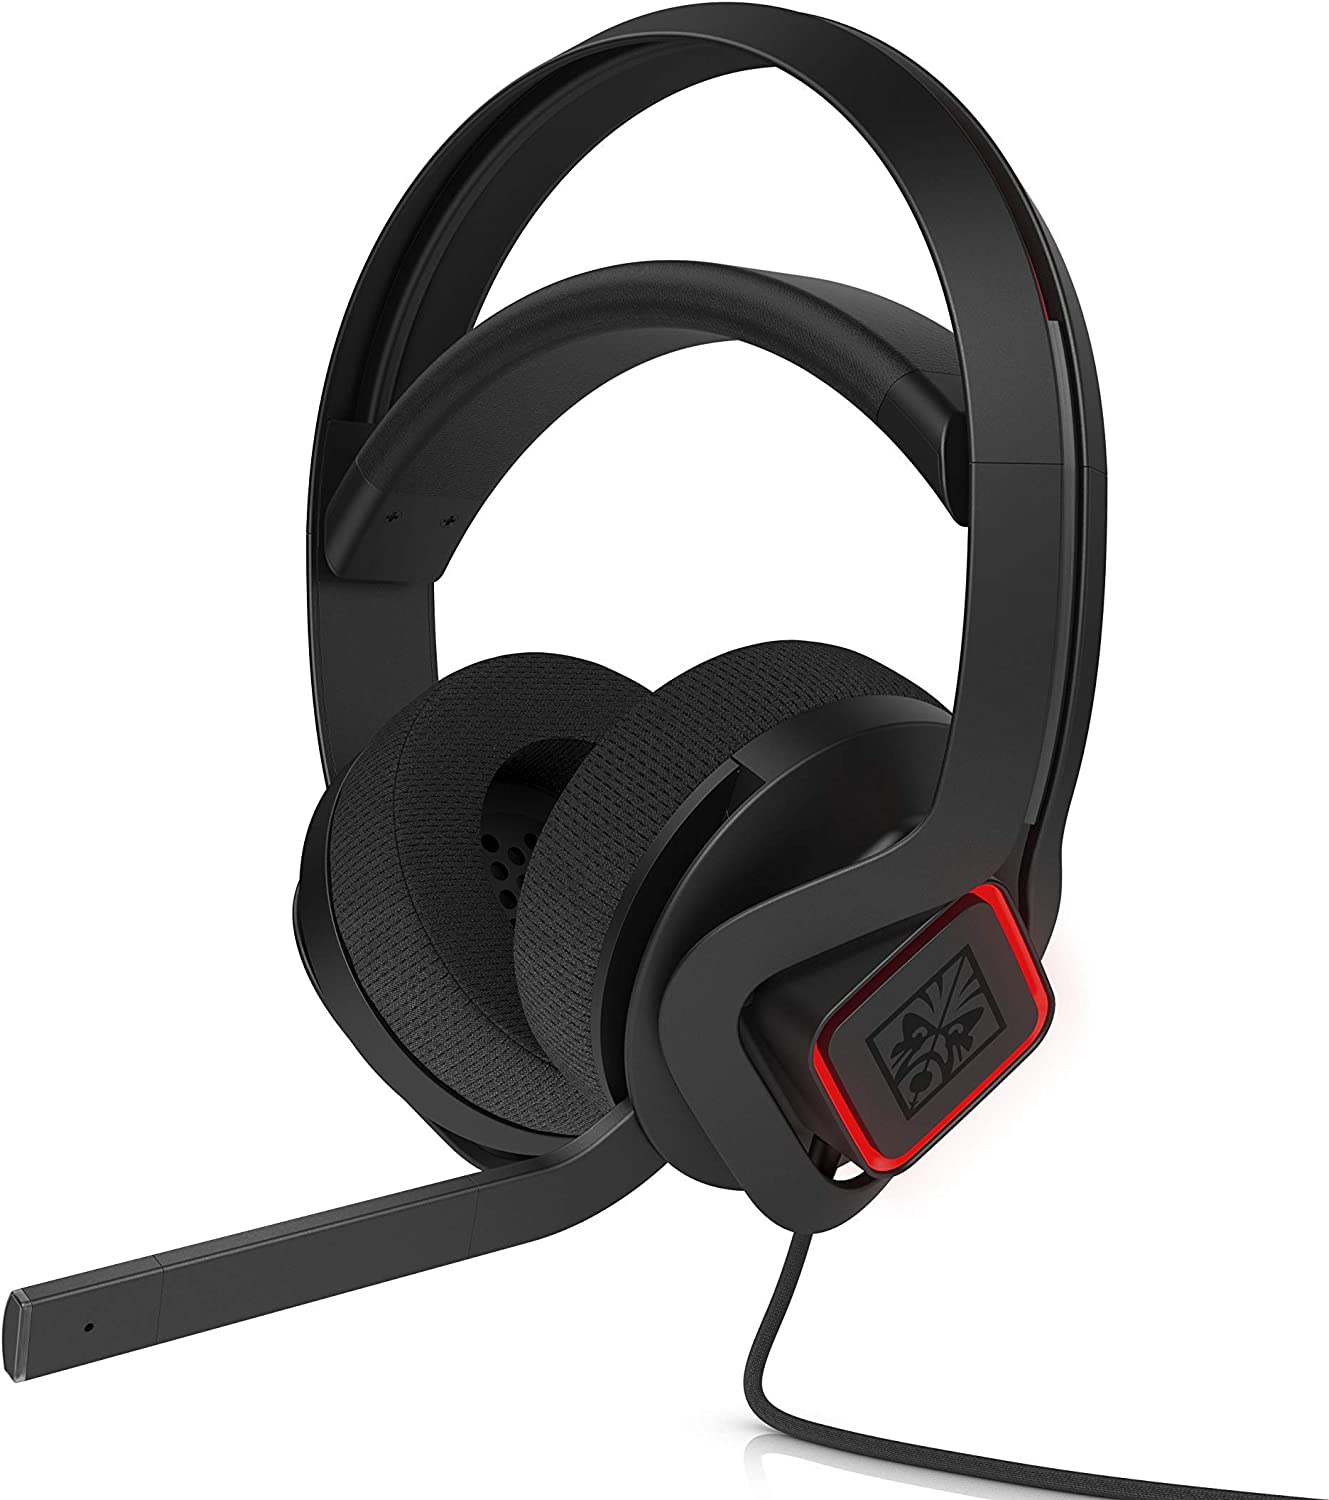 OMEN by HP Mindframe PC Gaming Headset with World's First FrostCap Active Cooling Technology (black) (Renewed)